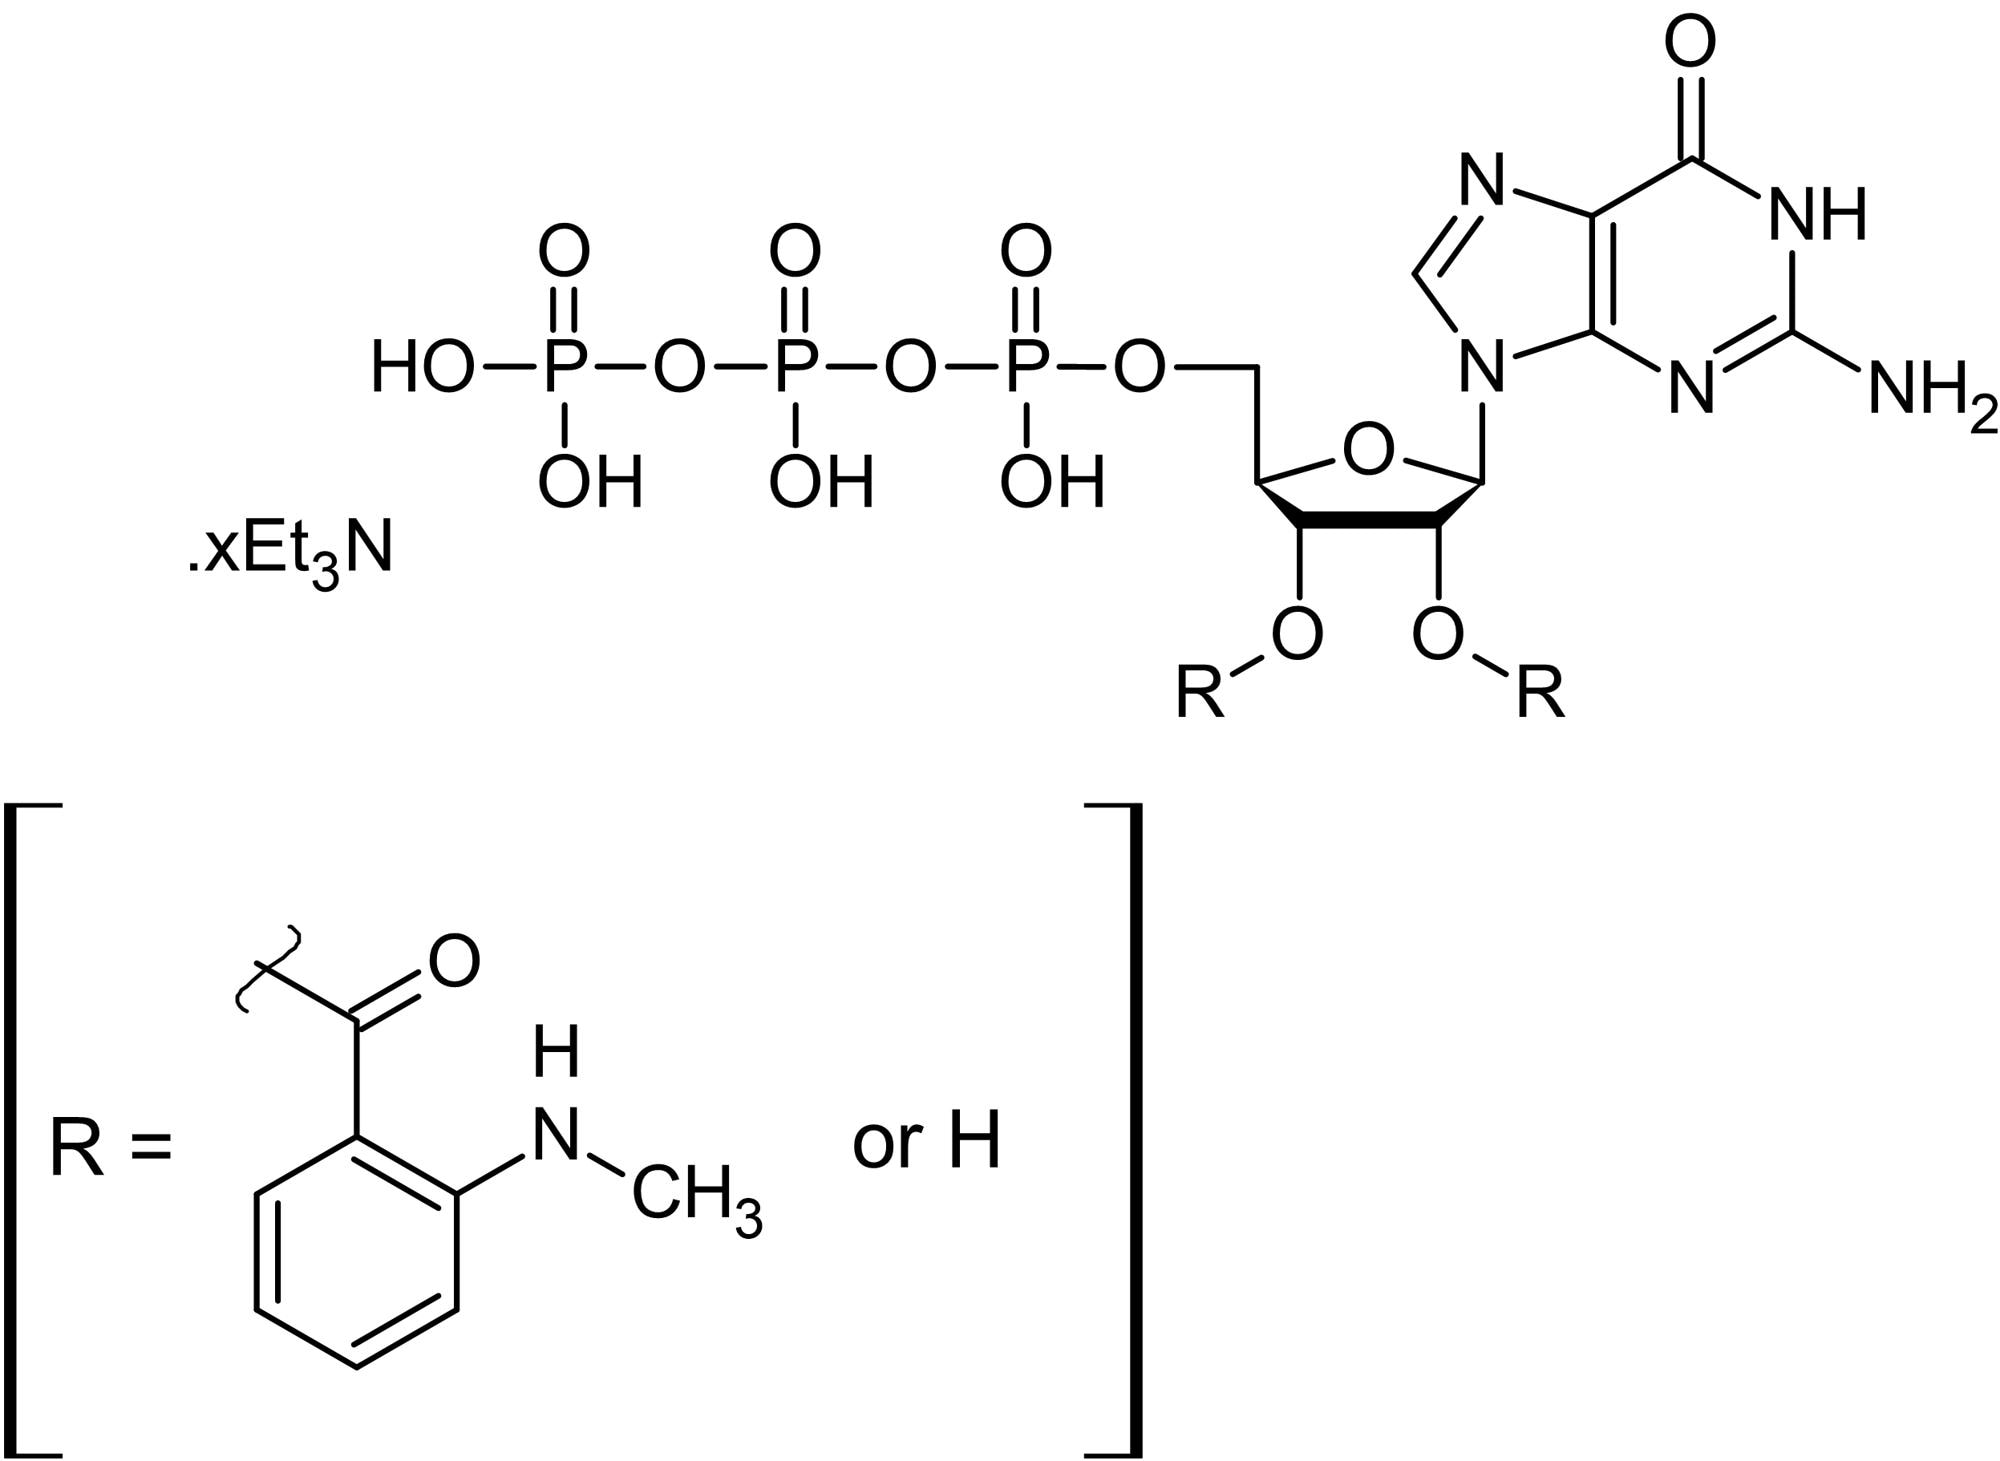 Chemical Structure - Mant-GTP (aqueous solution), Fluorescent nucleotide GTP analog (ab146757)